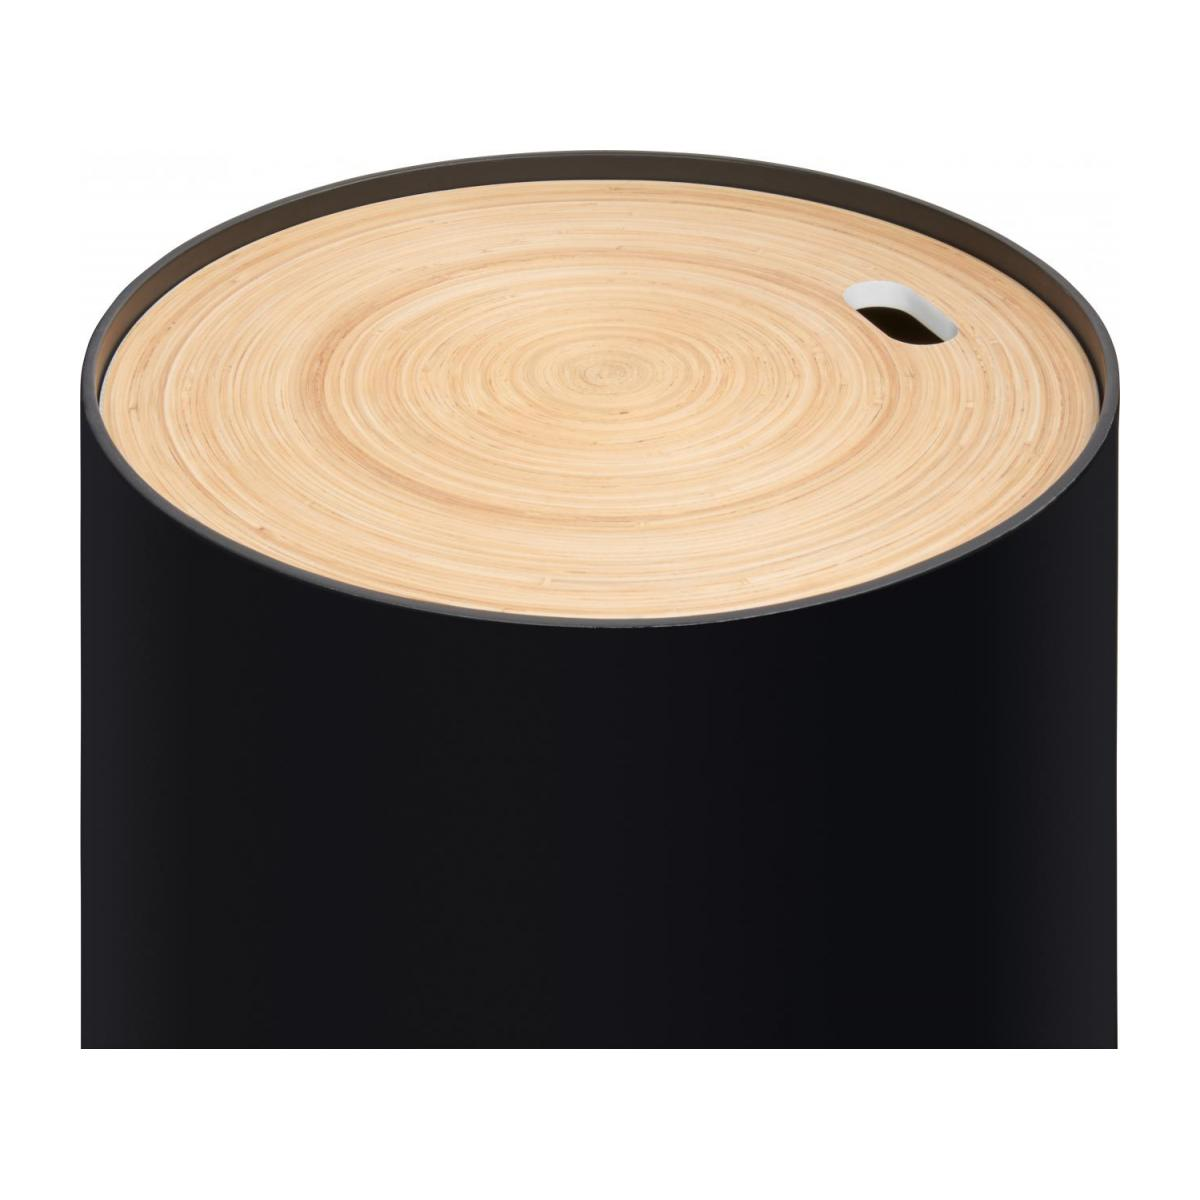 Black bamboo side table 40cm n°4